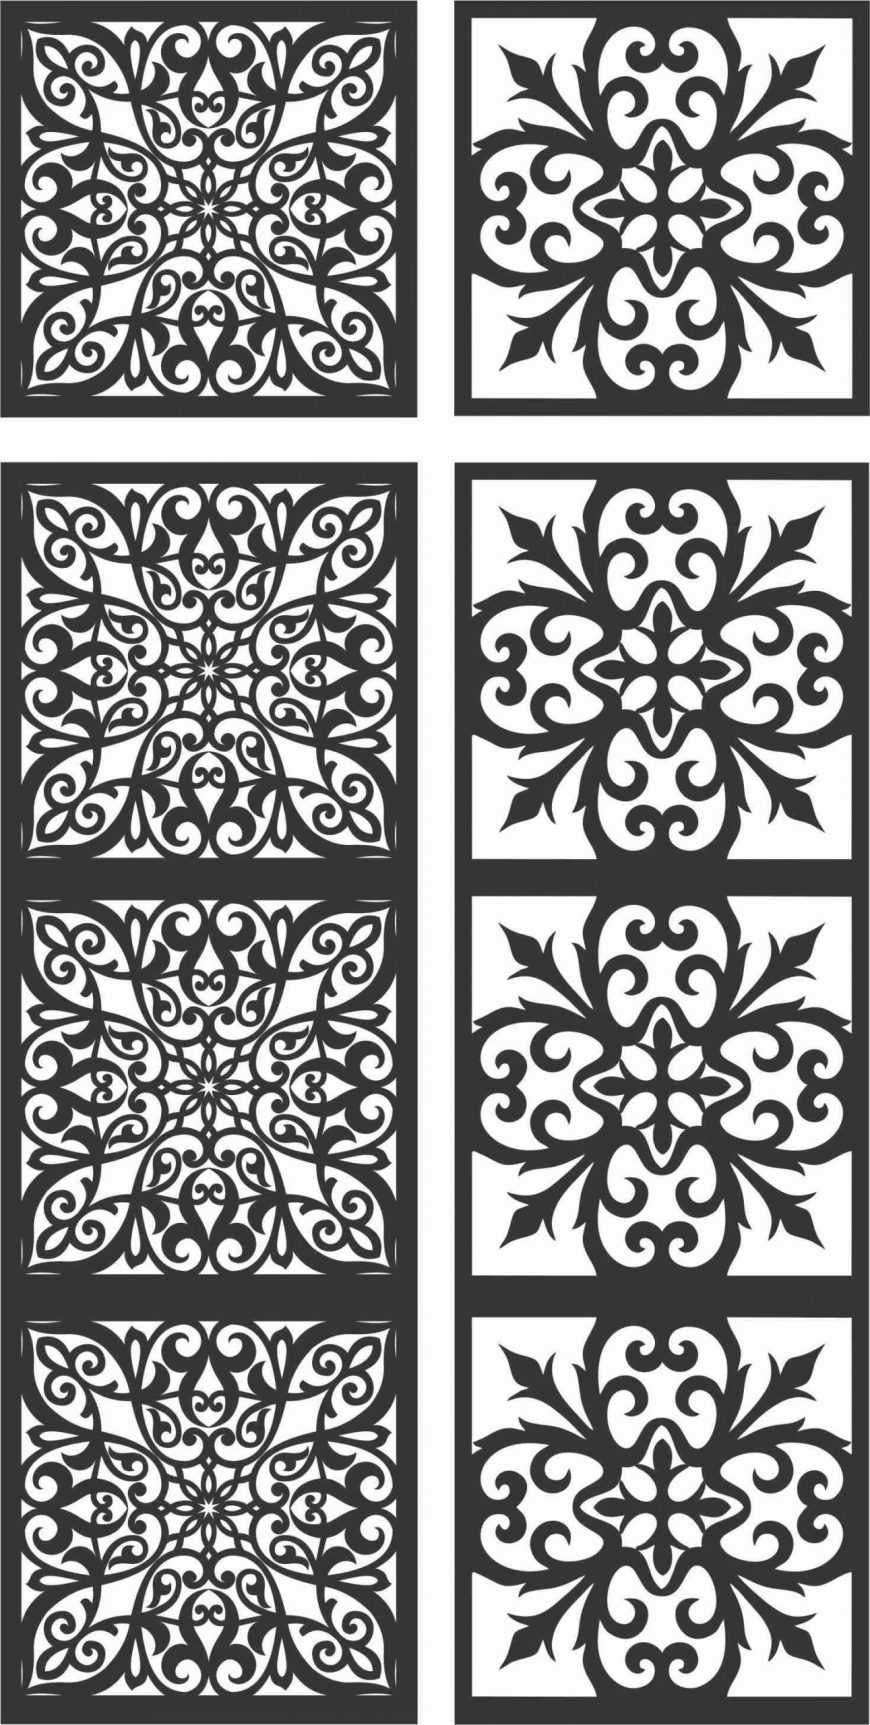 Floral Screen Patterns Design 119 Free DXF File